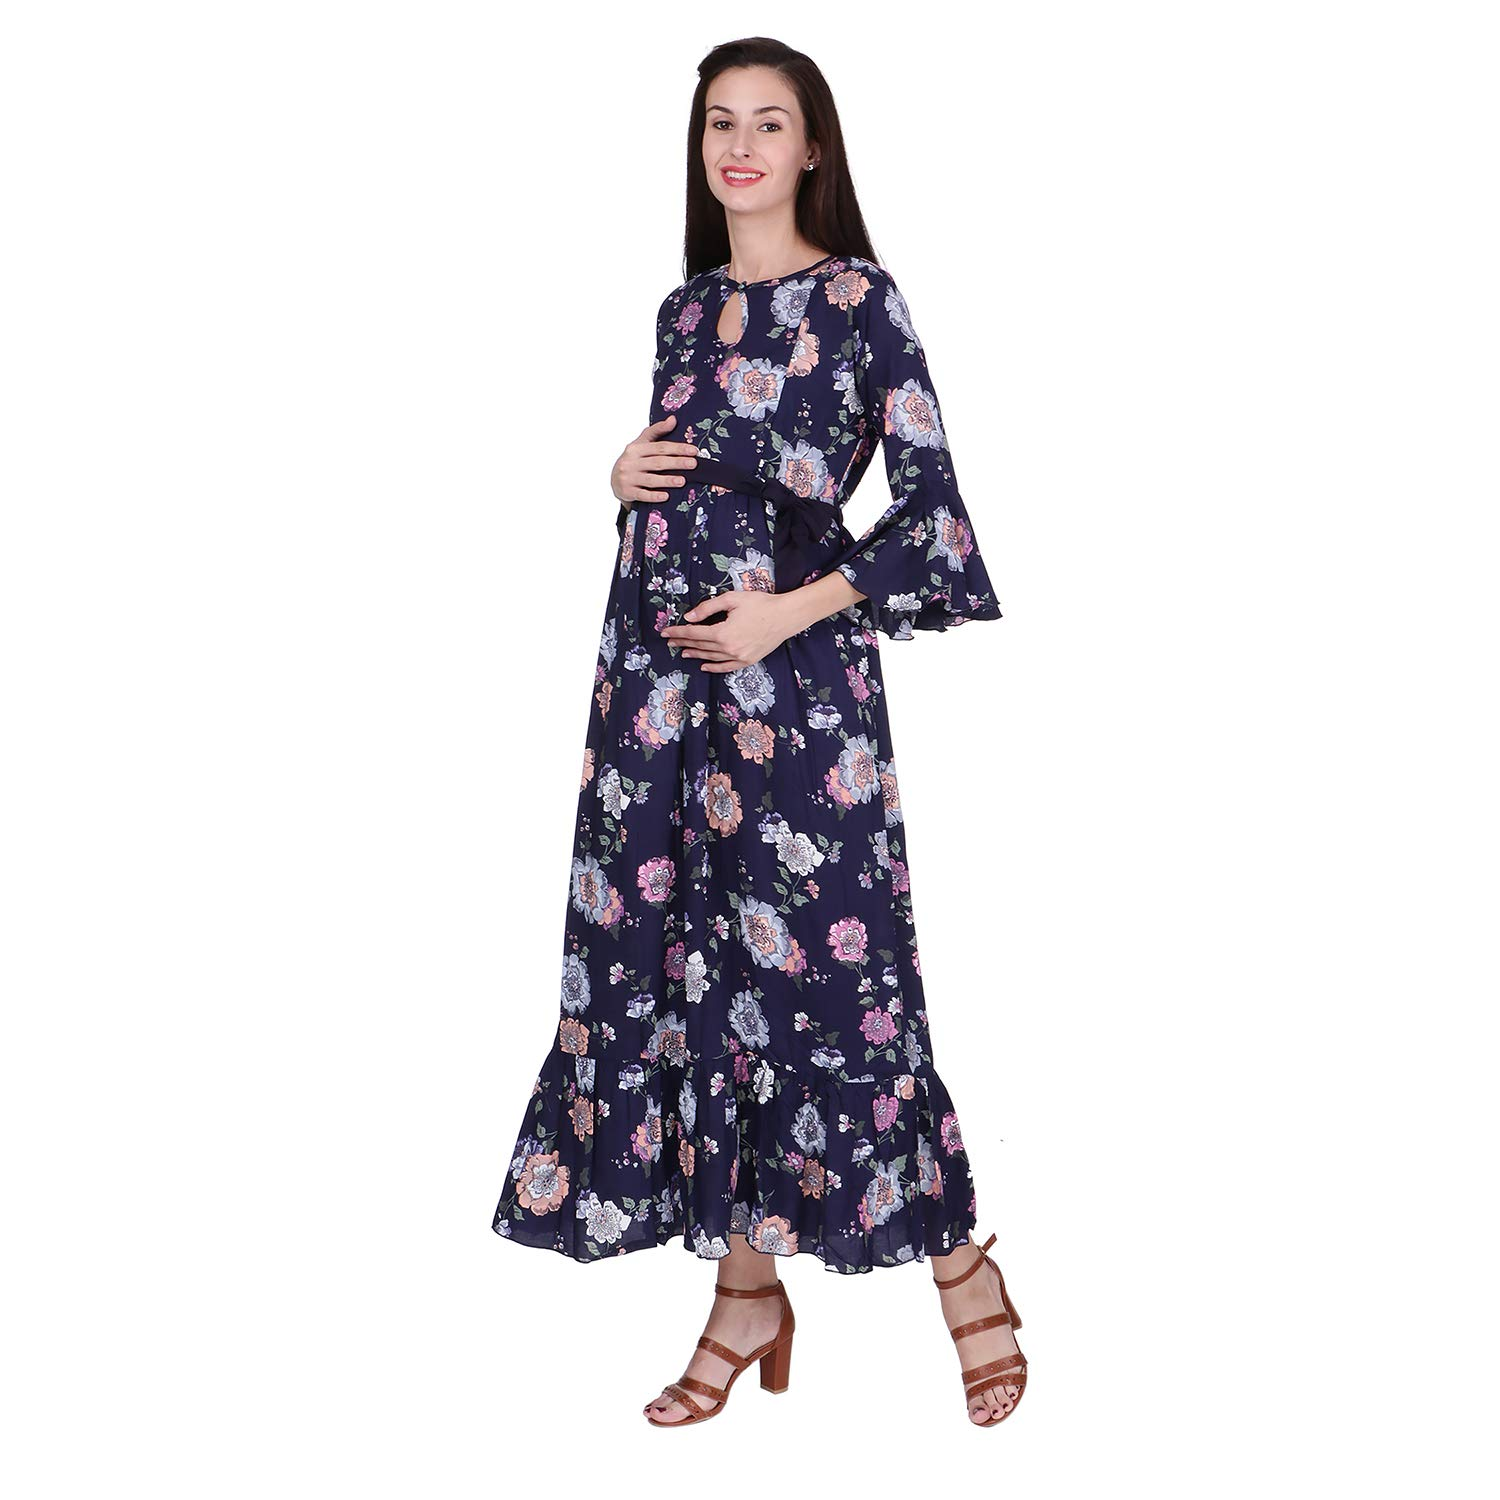 c6c14559f7be5 VIXENWRAP Dark Black Rayon Floral Print Maternity Gown: Amazon.in: Clothing  & Accessories